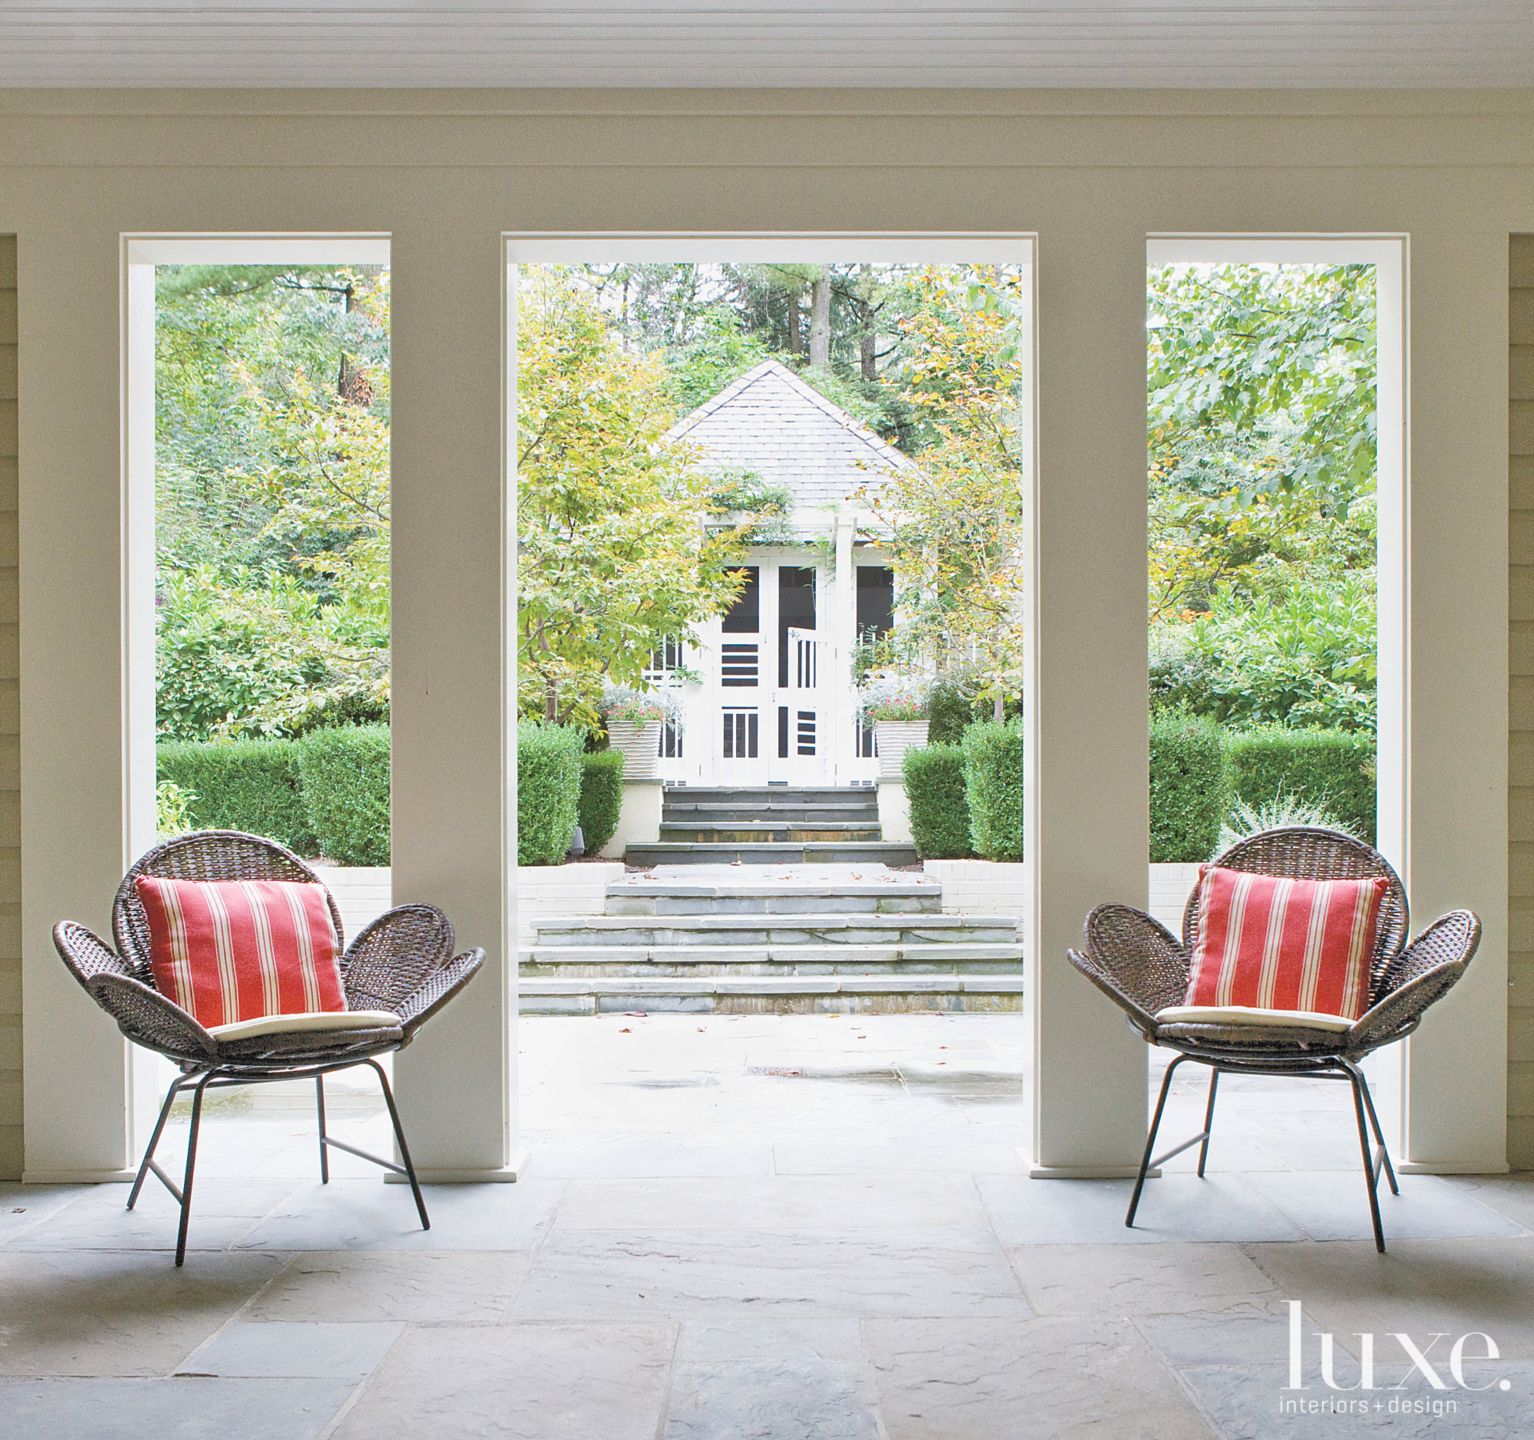 Transitional Neutral Patio with Wicker Chairs